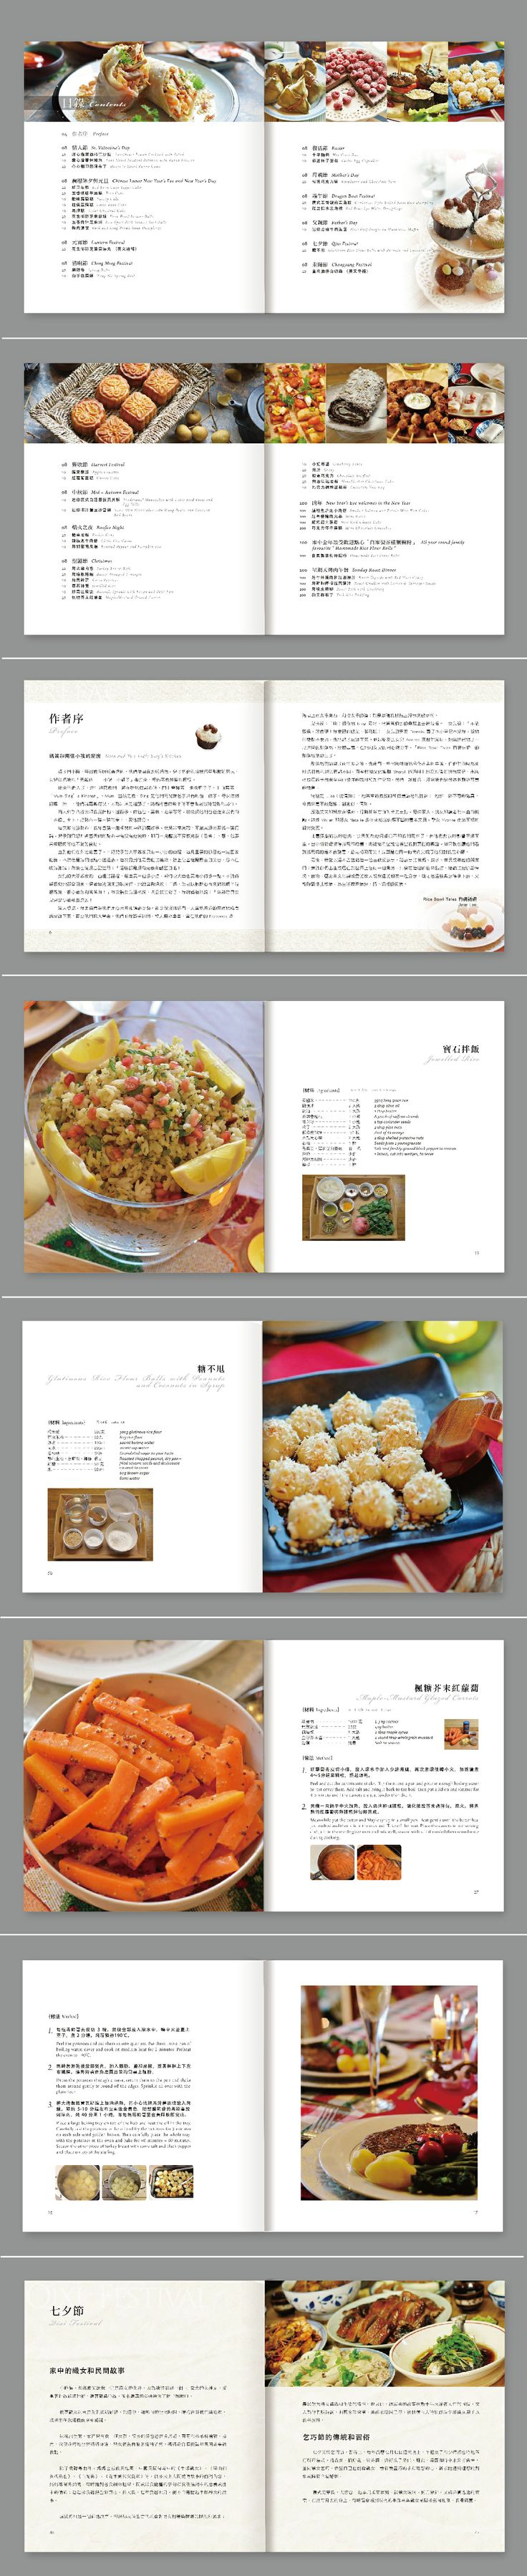 Cookbook Layout design                                                                                                                                                                                 More